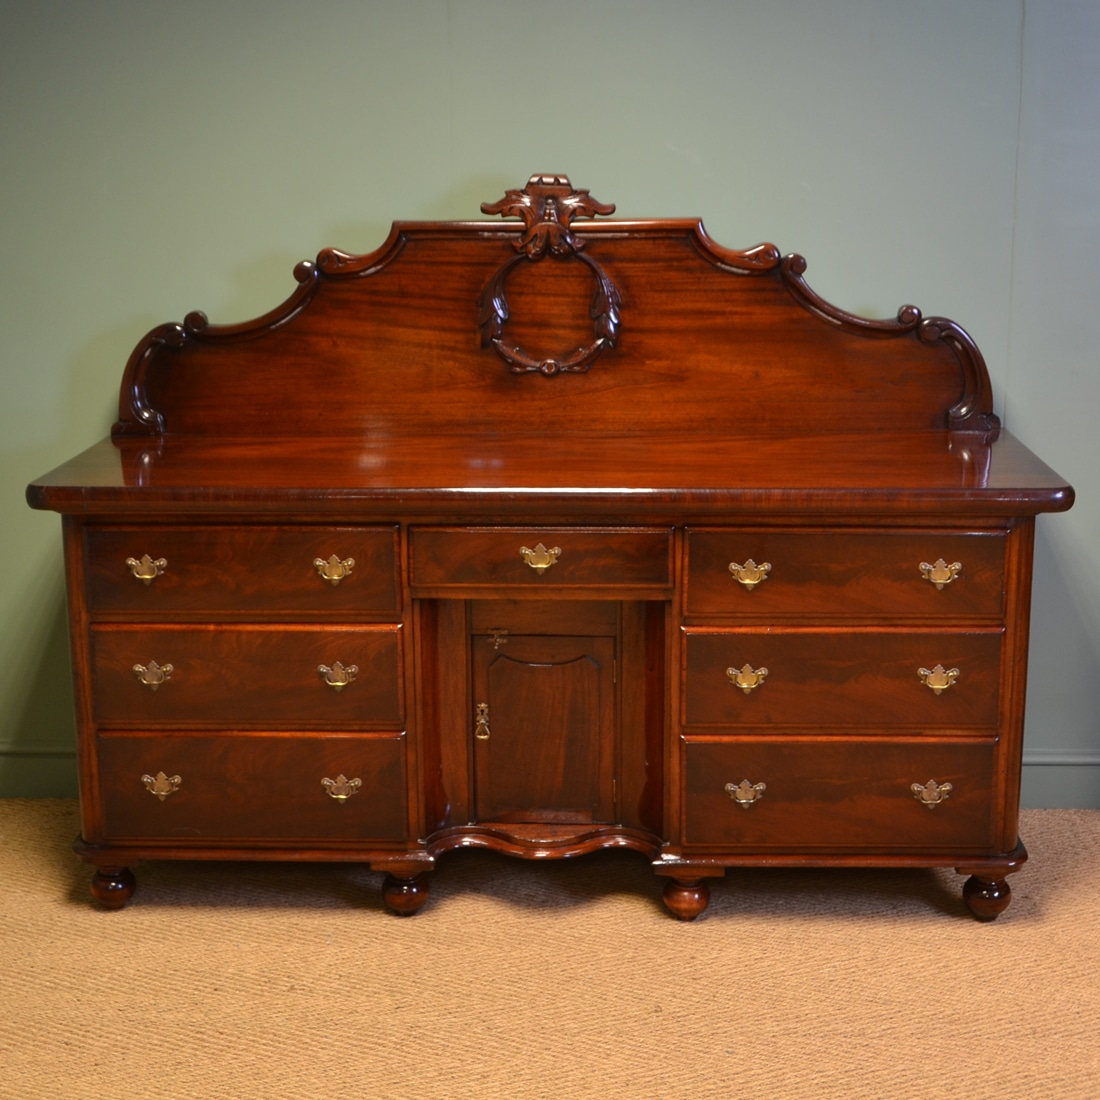 Vintage Sideboard For Sale Uk Large Figured Mahogany Quality Antique Victorian Sideboard